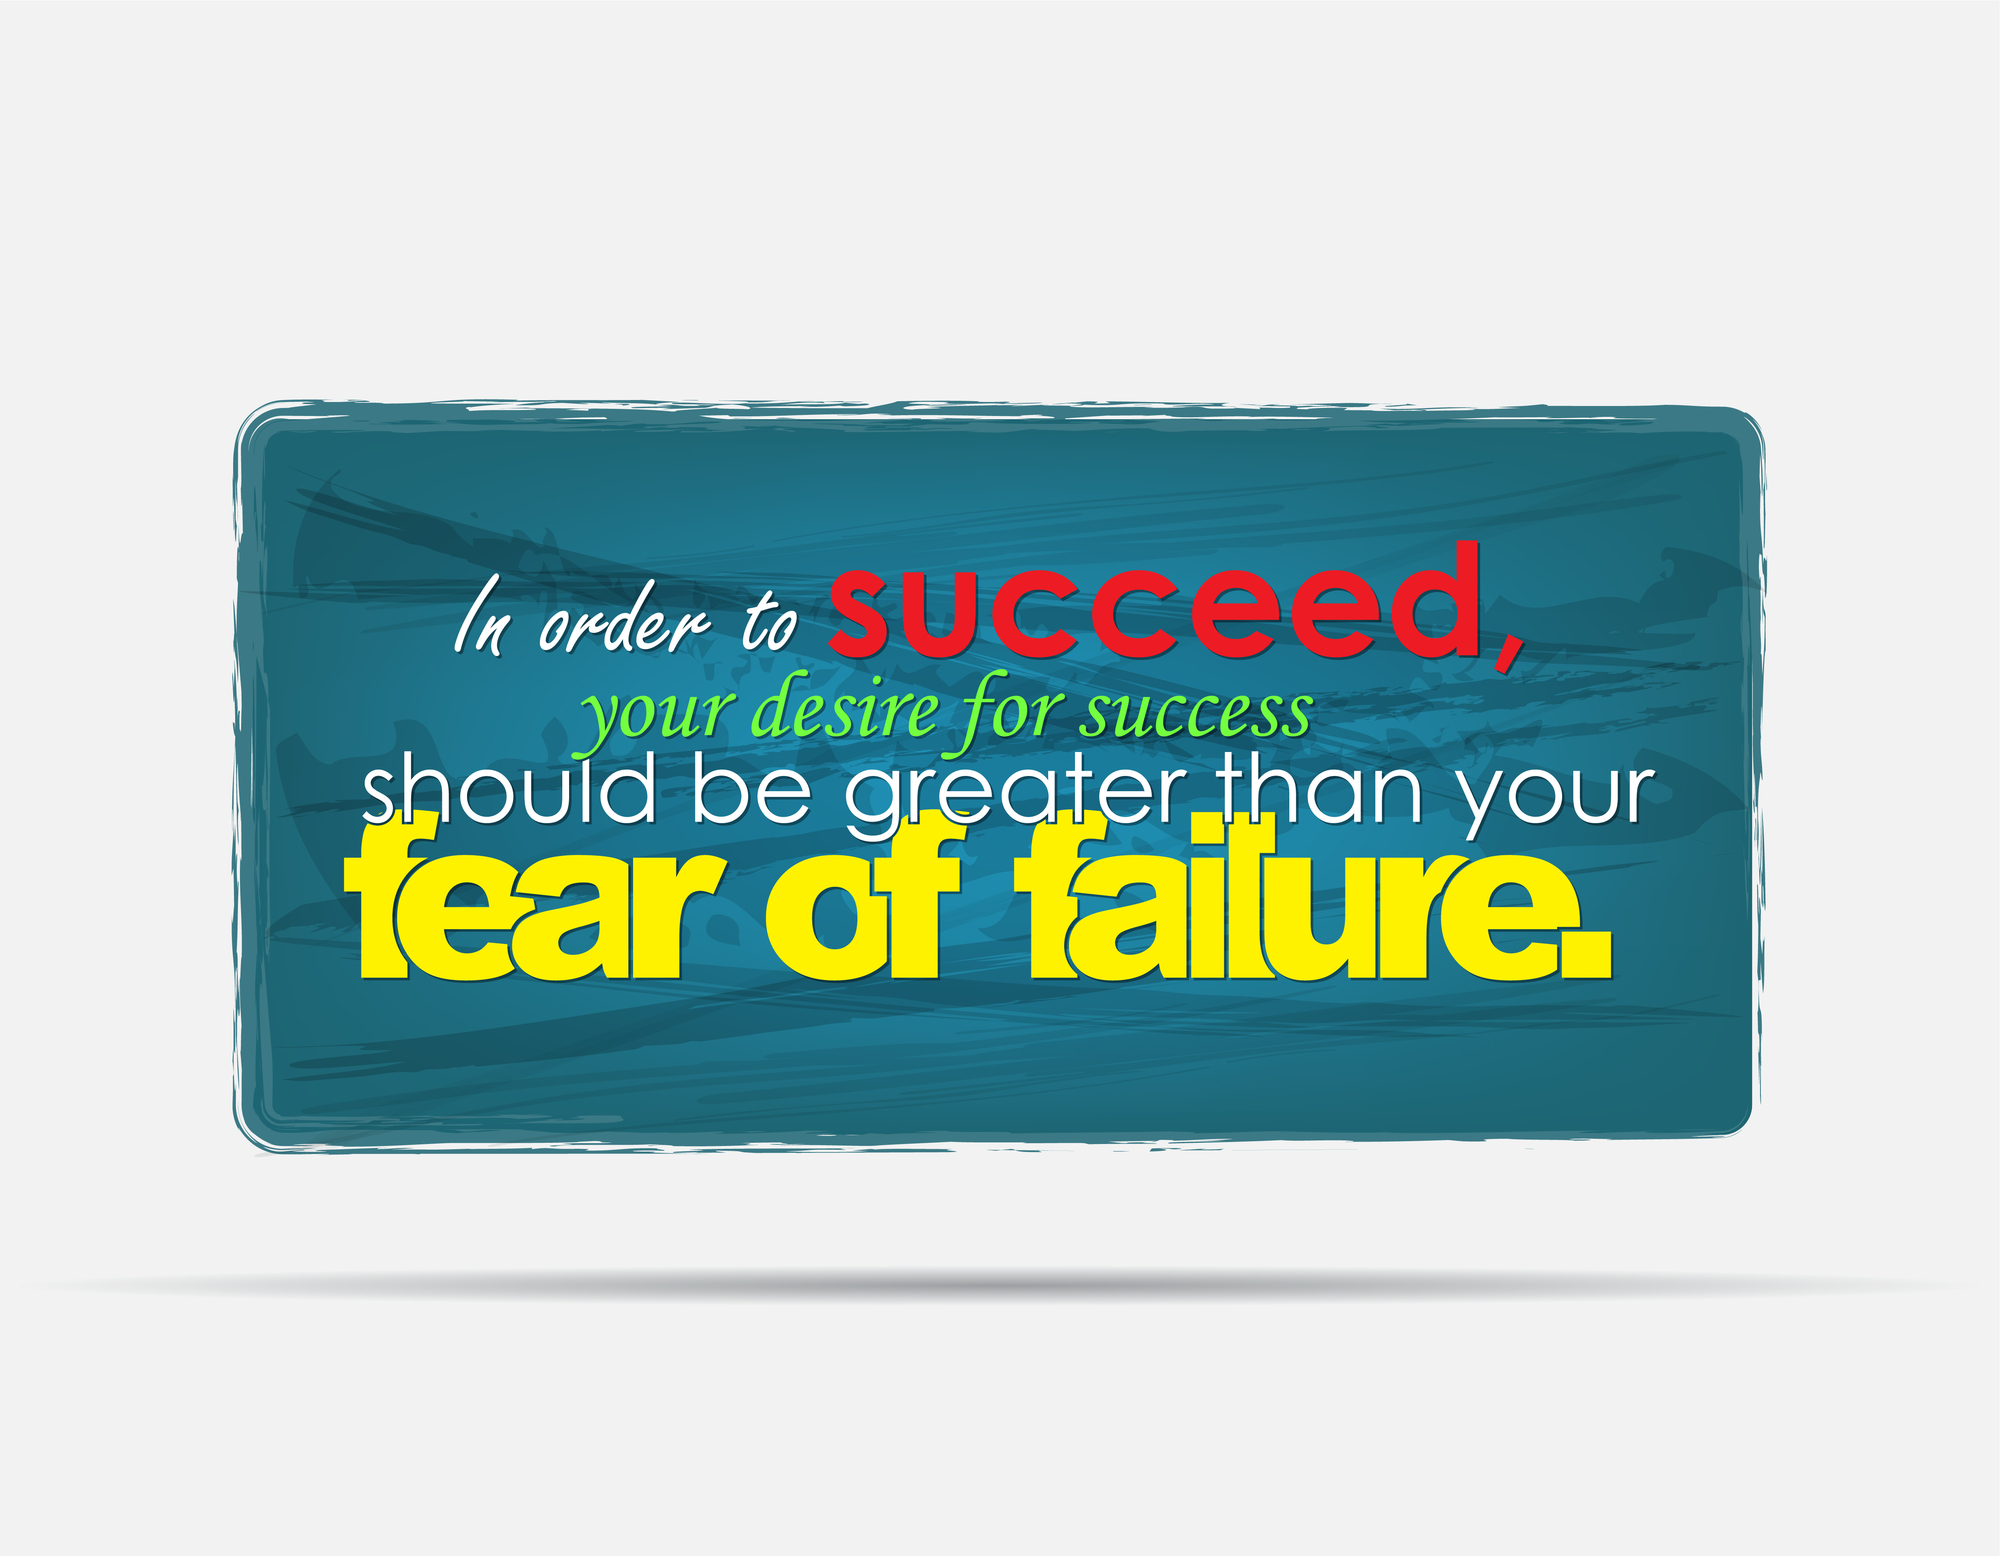 Covid-19: Facing the Fear of Failure, and How to Beat it!